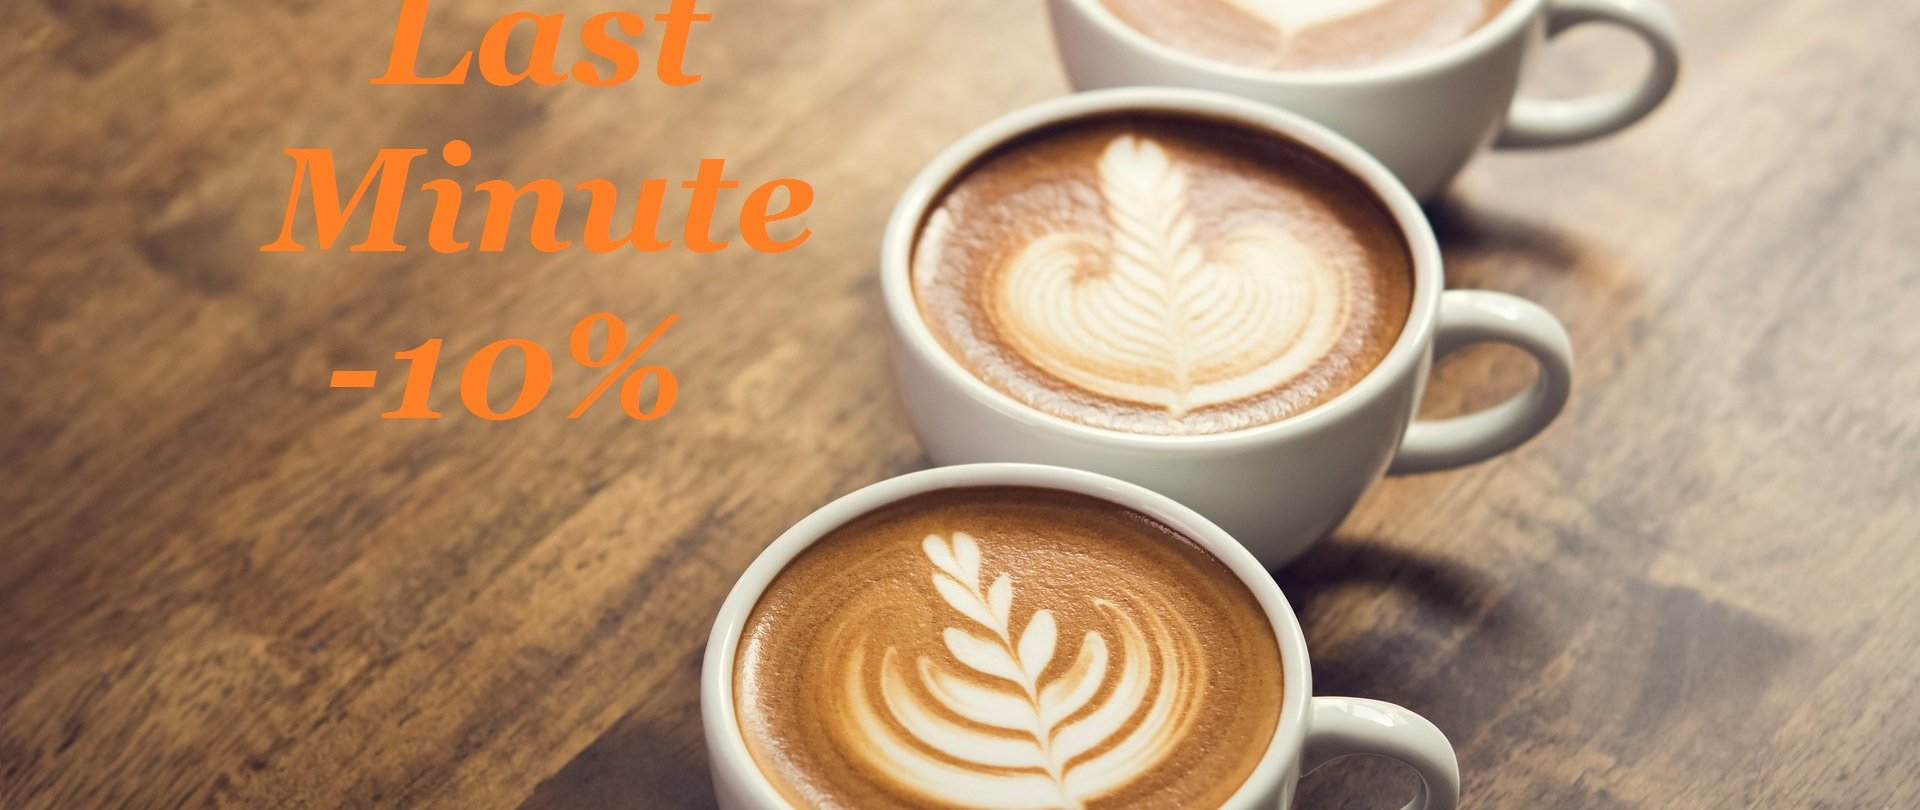 Last Minute offer with breakfast -20%